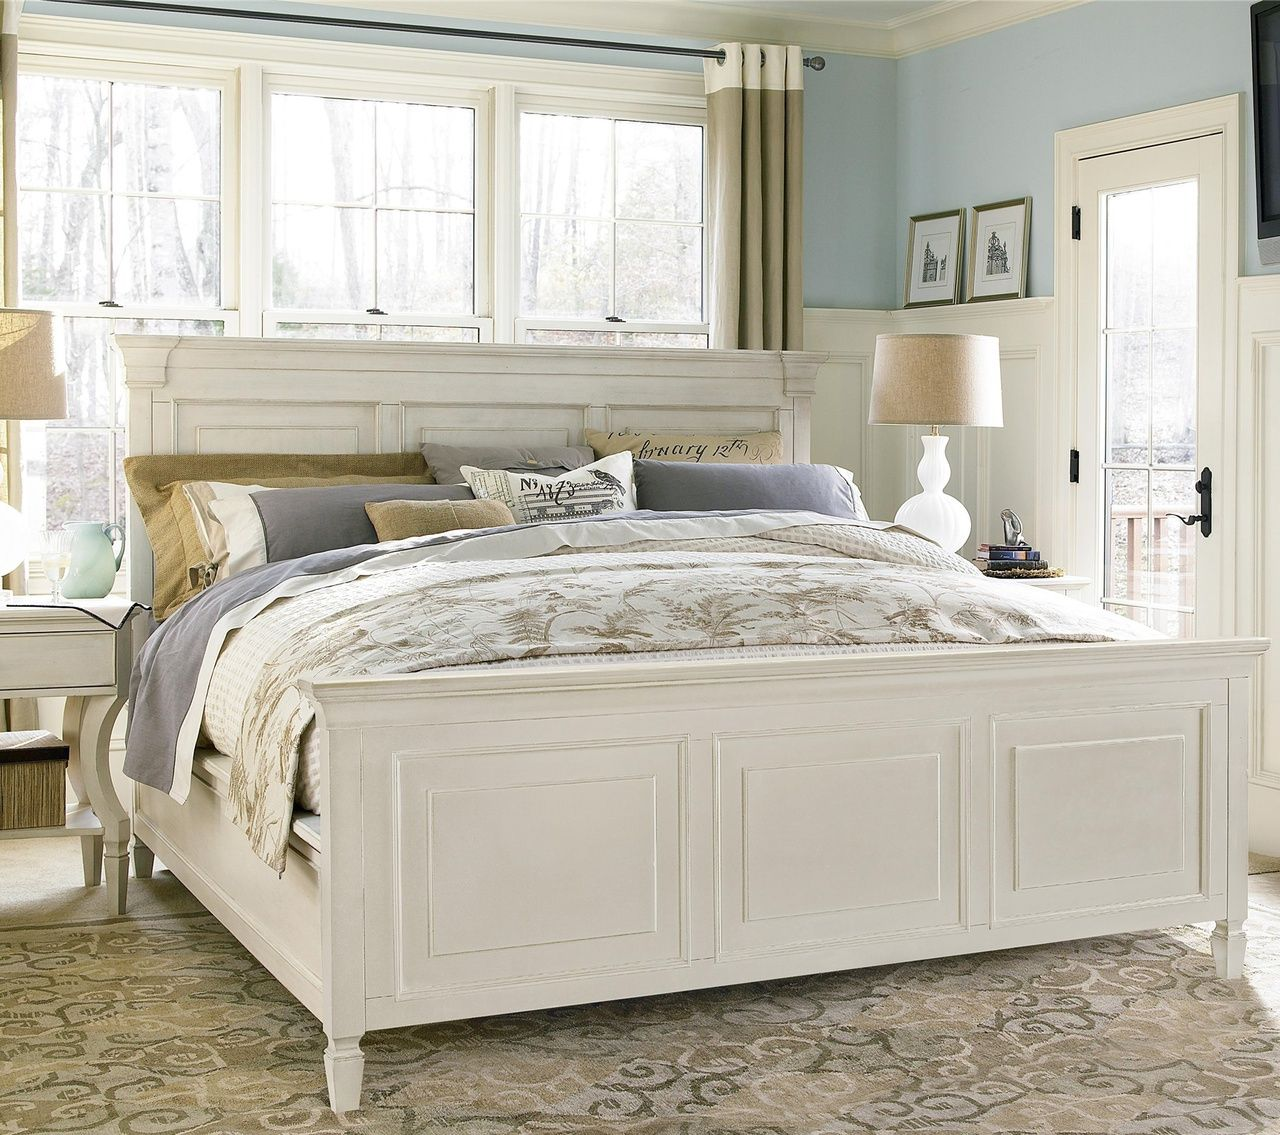 CountryChic White Queen Size Bed Frame Queen size beds